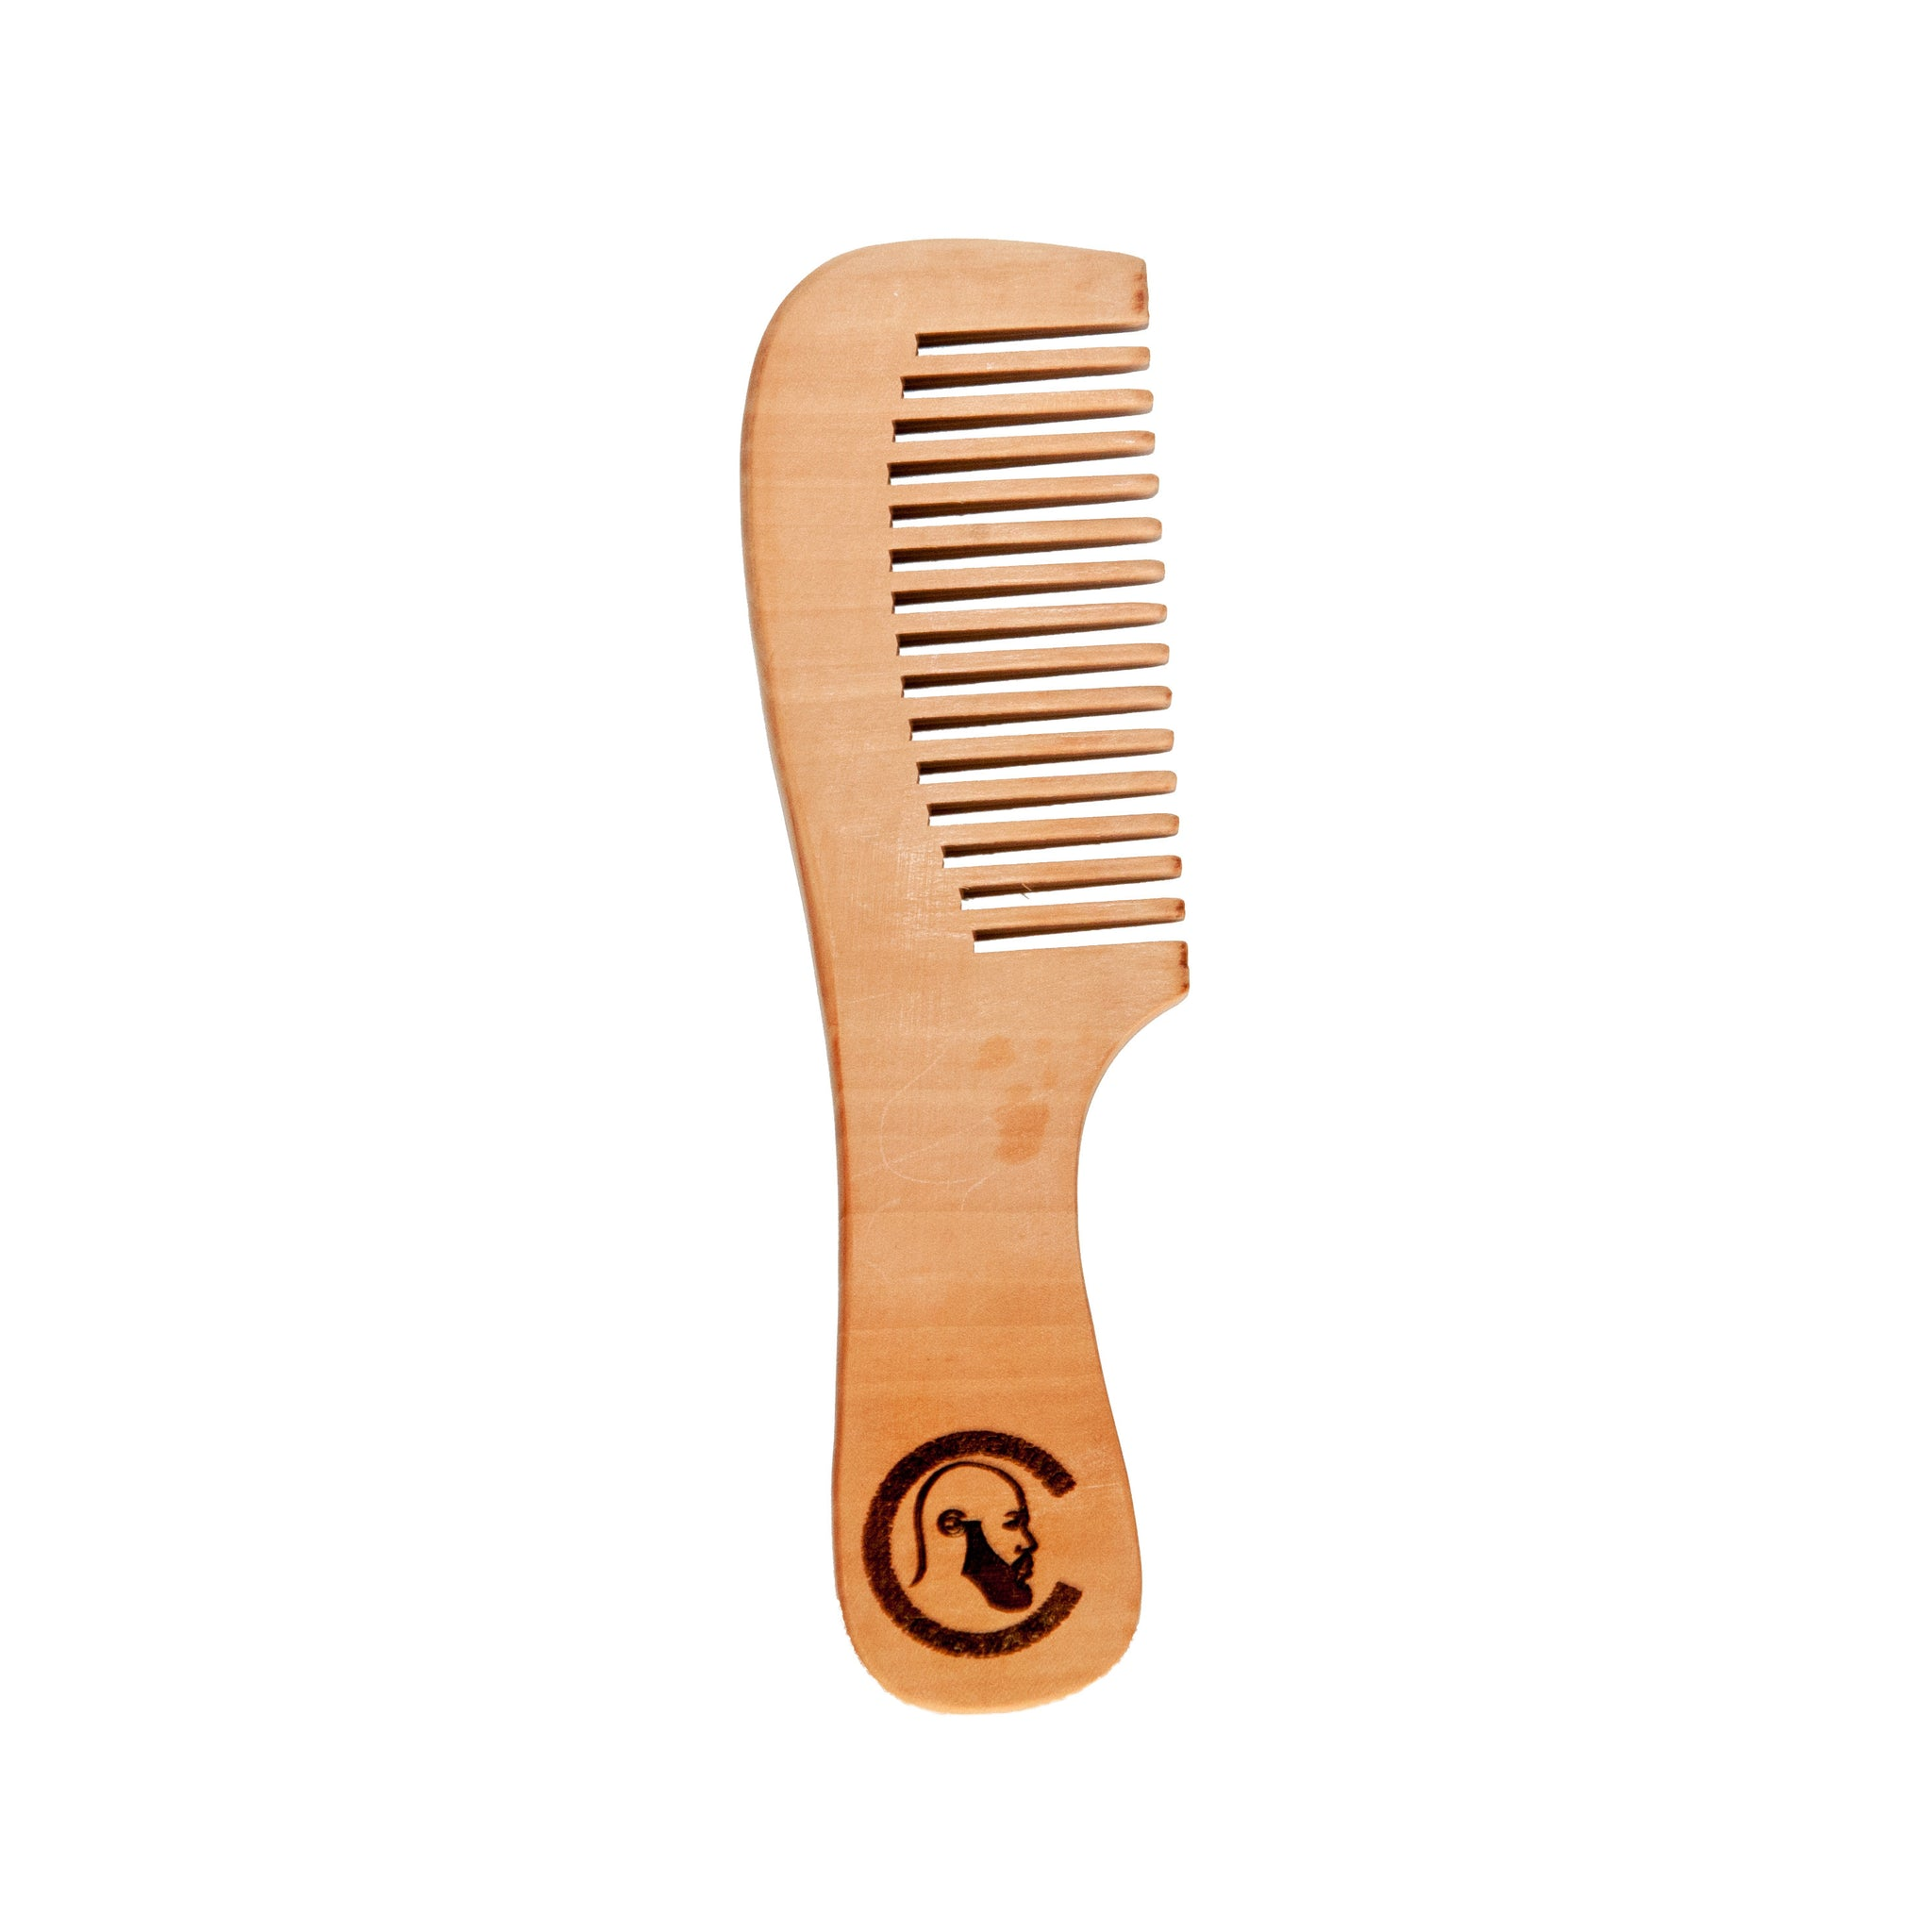 Creative Culture Wood Beard Comb